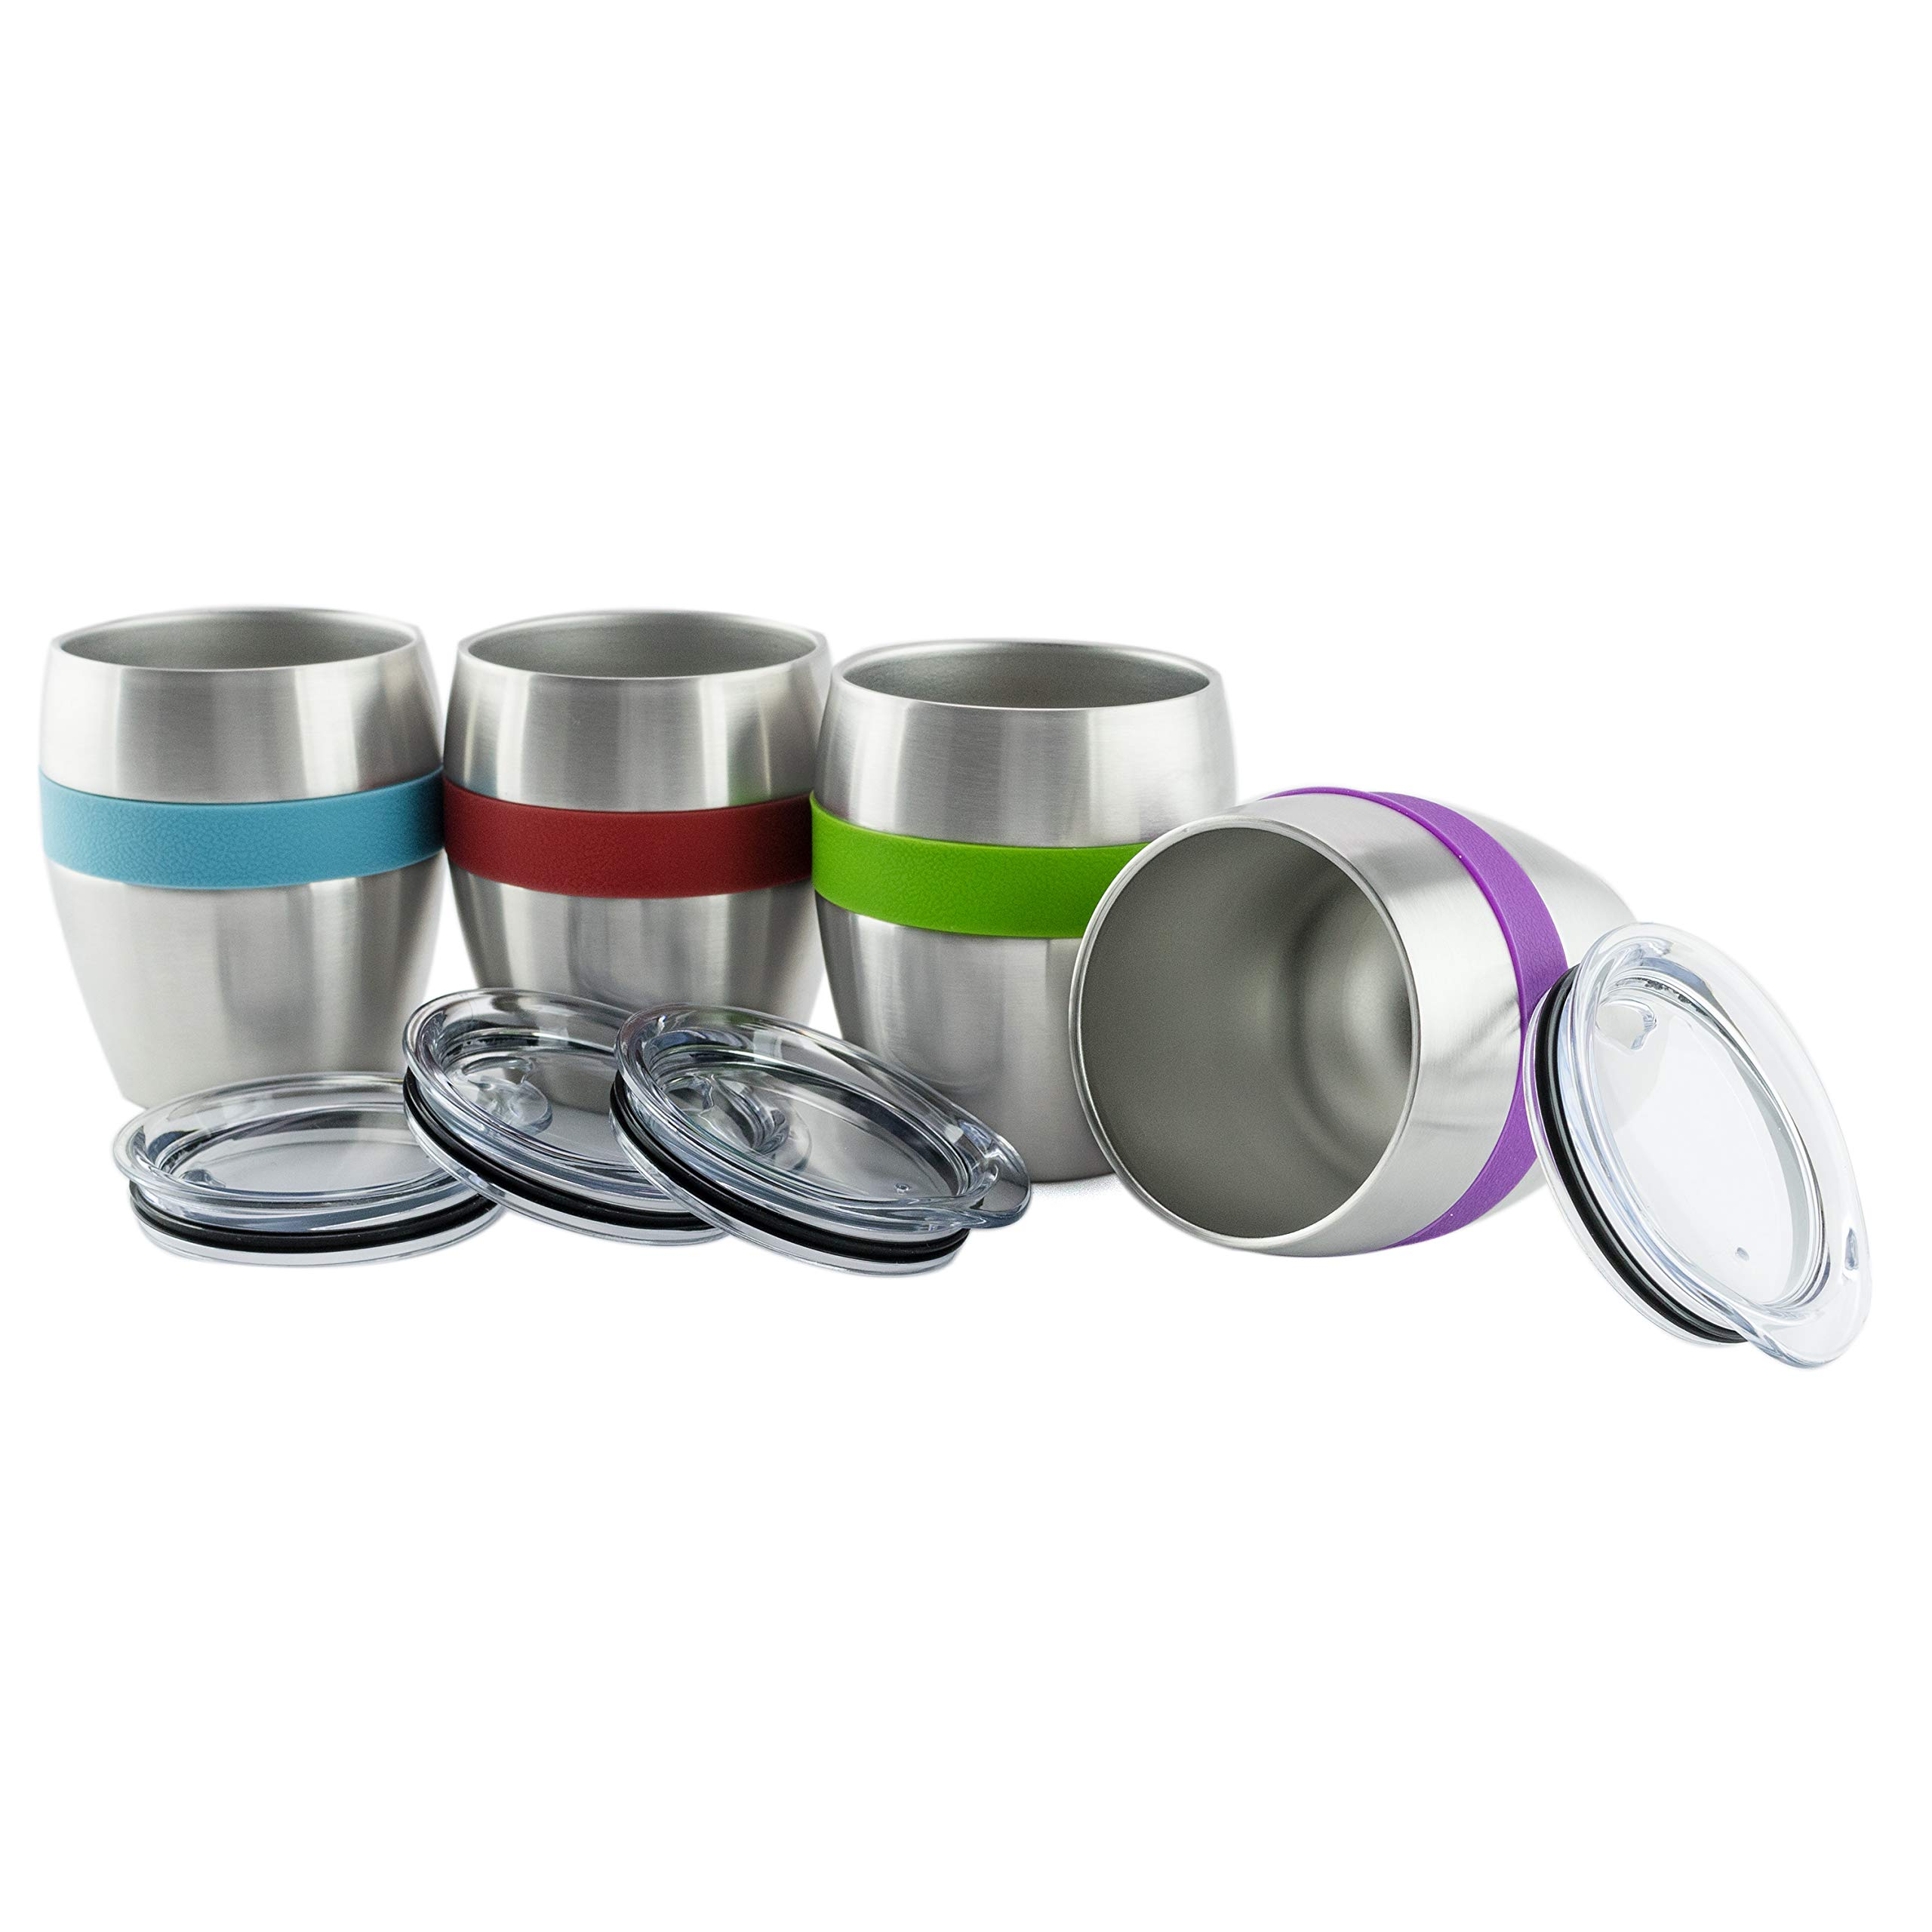 Stainless Steel Wine Glasses with Lids, Set of 4, Double Wall Insulated Stemless Wine and Drink Tumblers with Spill-Resistant Lids with Built -in 4 Color Comfort Grips by Chozin Steelware (Image #4)